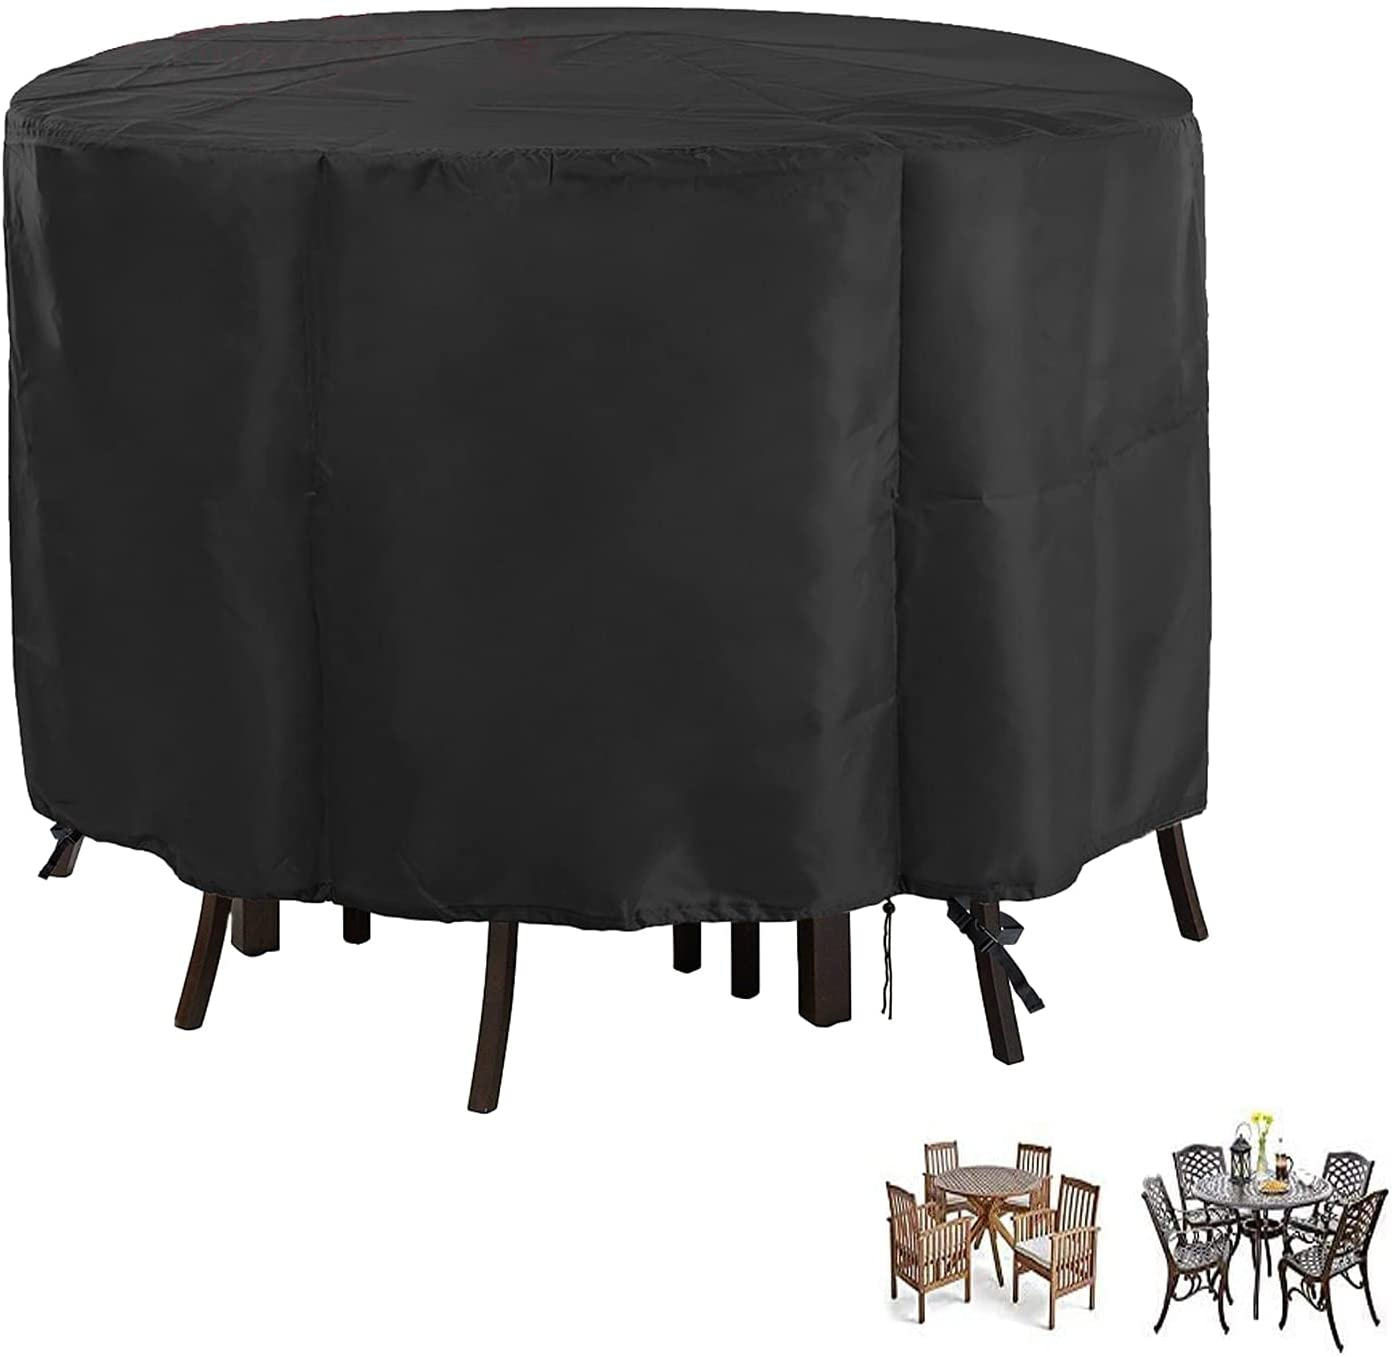 Outdoor Patio Furniture Covers, 9 x 9inch Waterproof and UV Resistant  Round Patio Dining Table and Chairs Set Cover with Drawstring fits for 9 ...